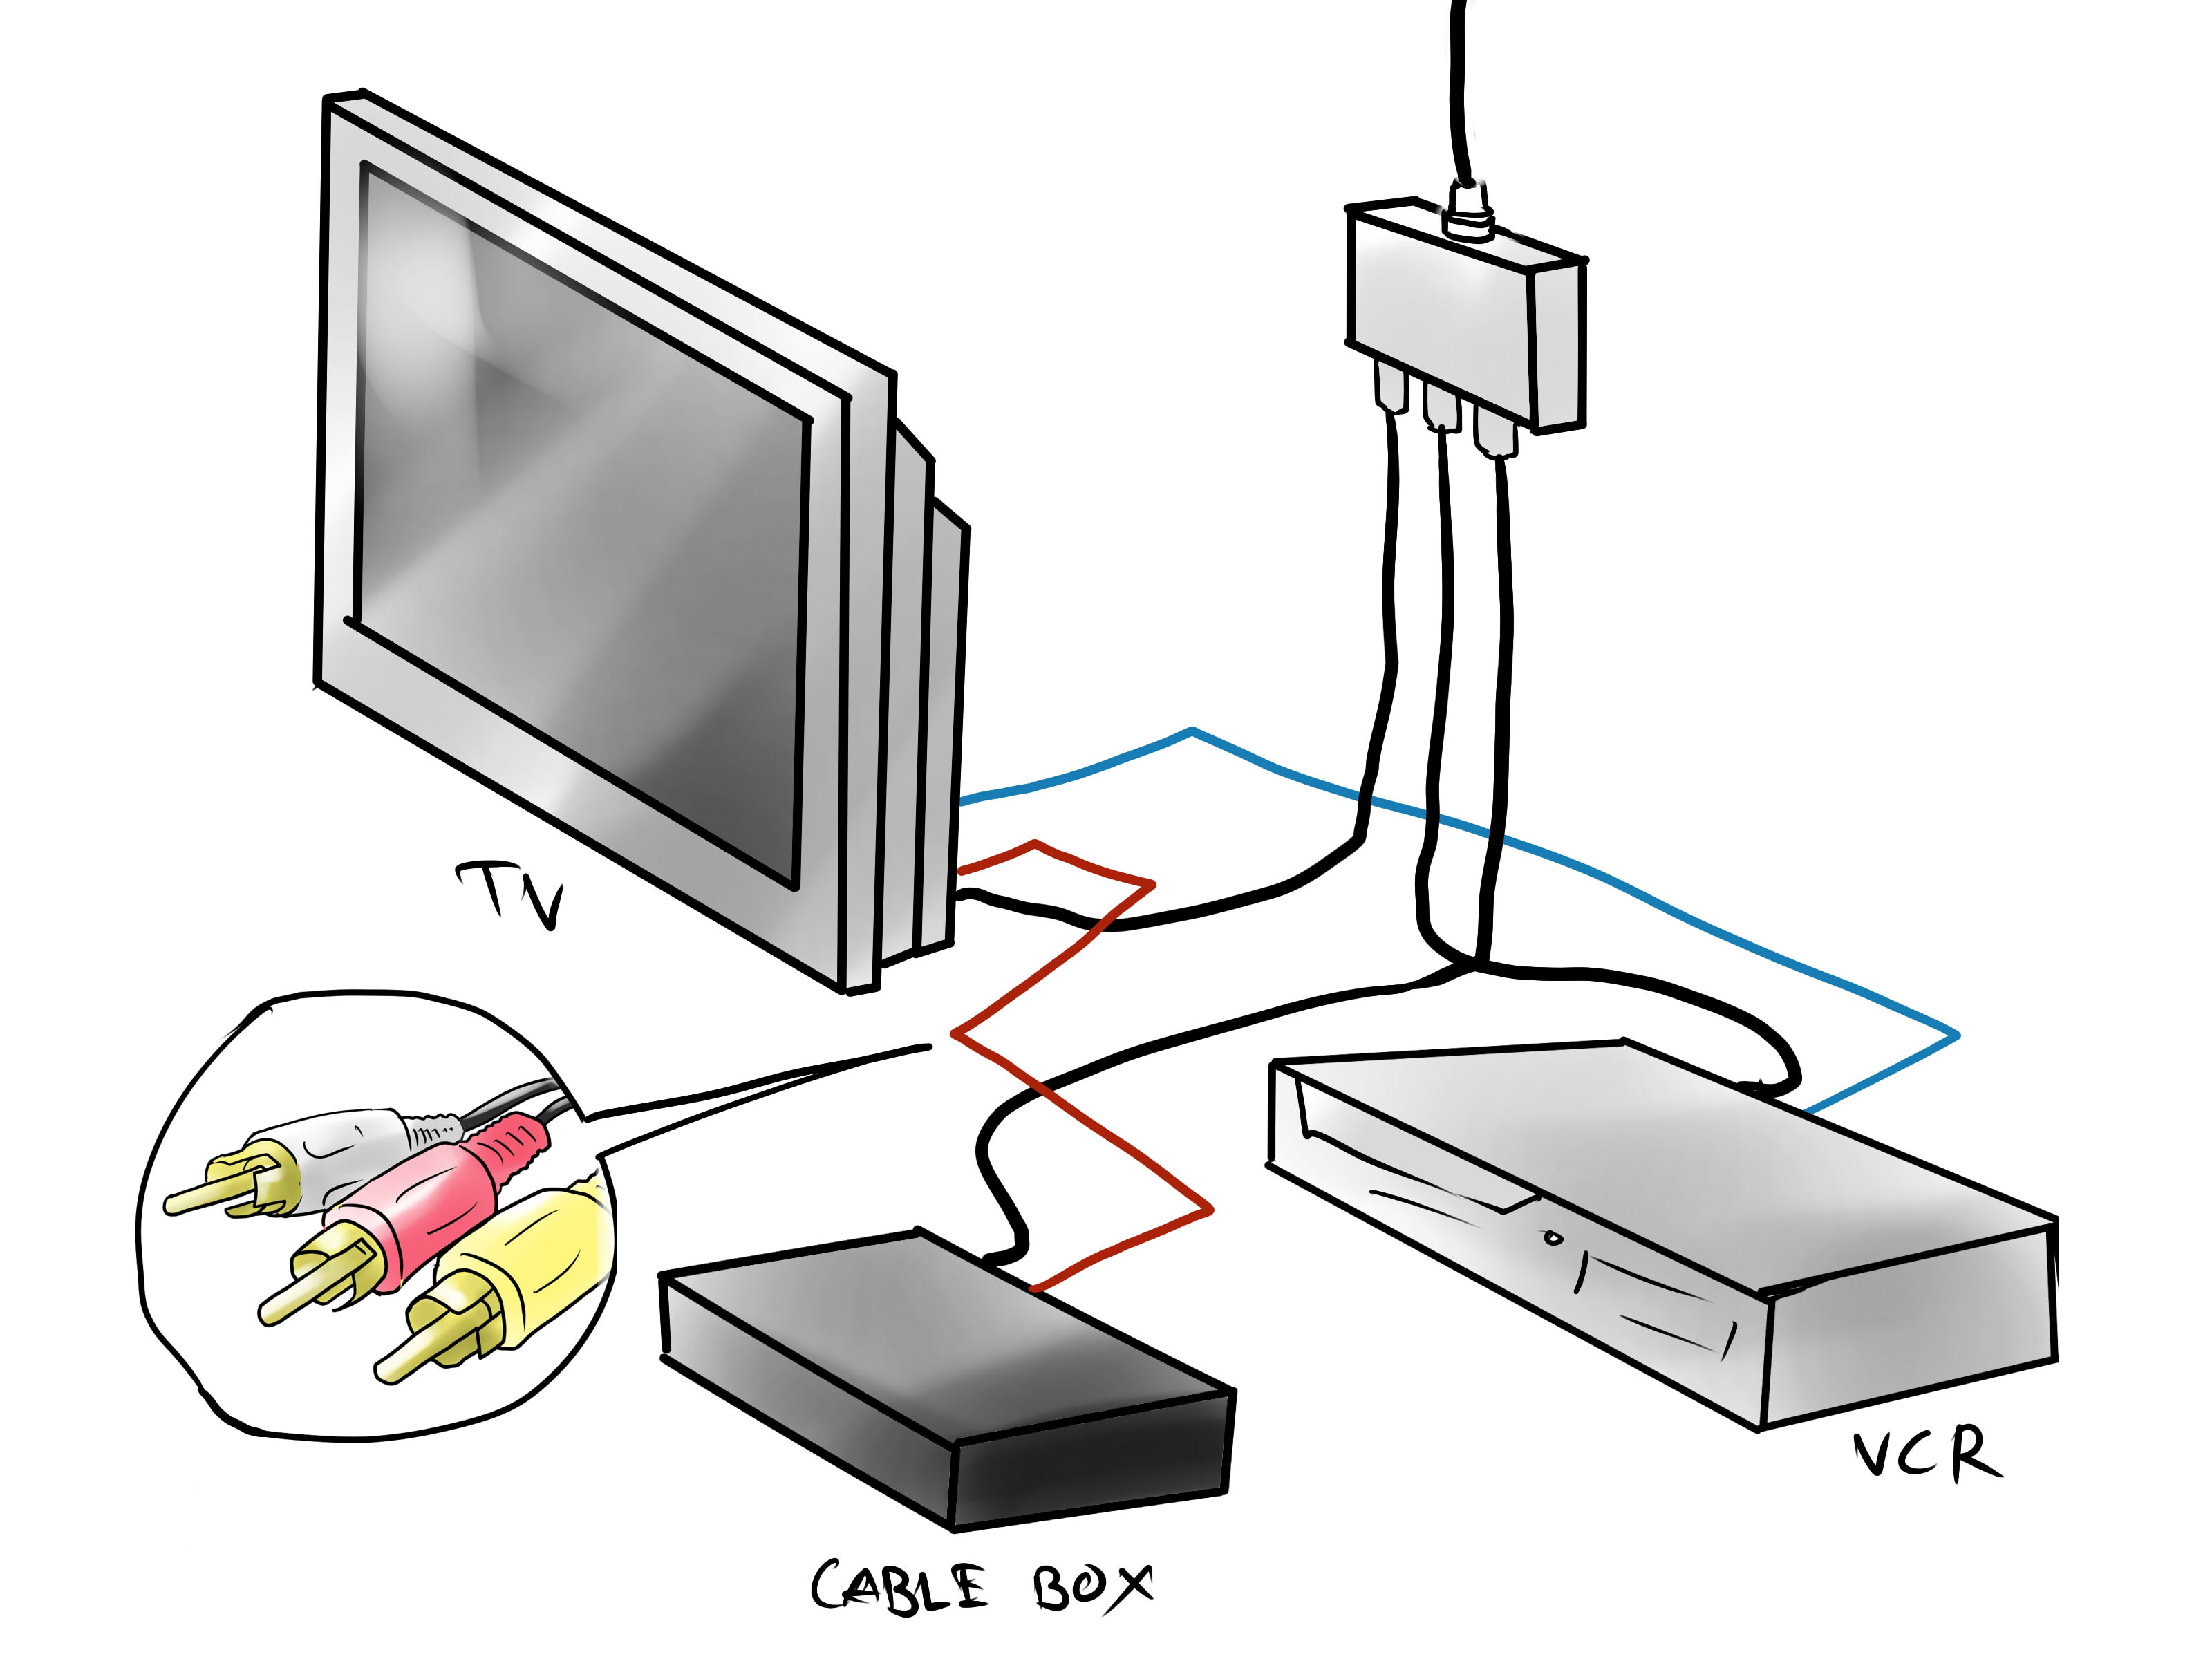 Tv Dvd Cable Box Diagram Connecting ther - Do you want ... Vcr And Dvd With Directv Wiring Diagram on